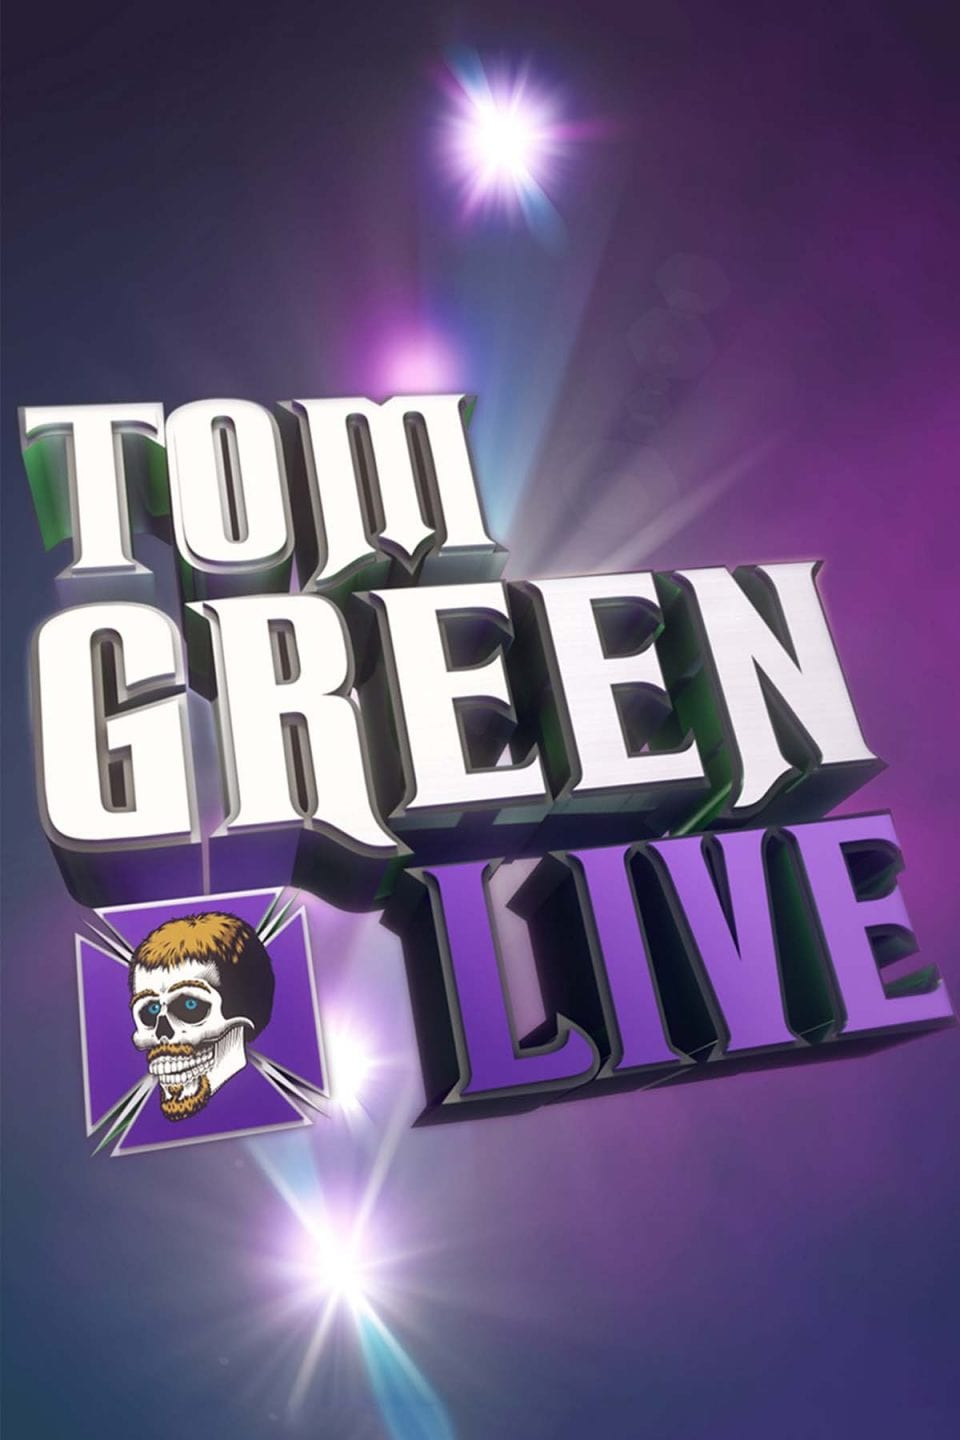 TomGreen Live13 Premiere 1400